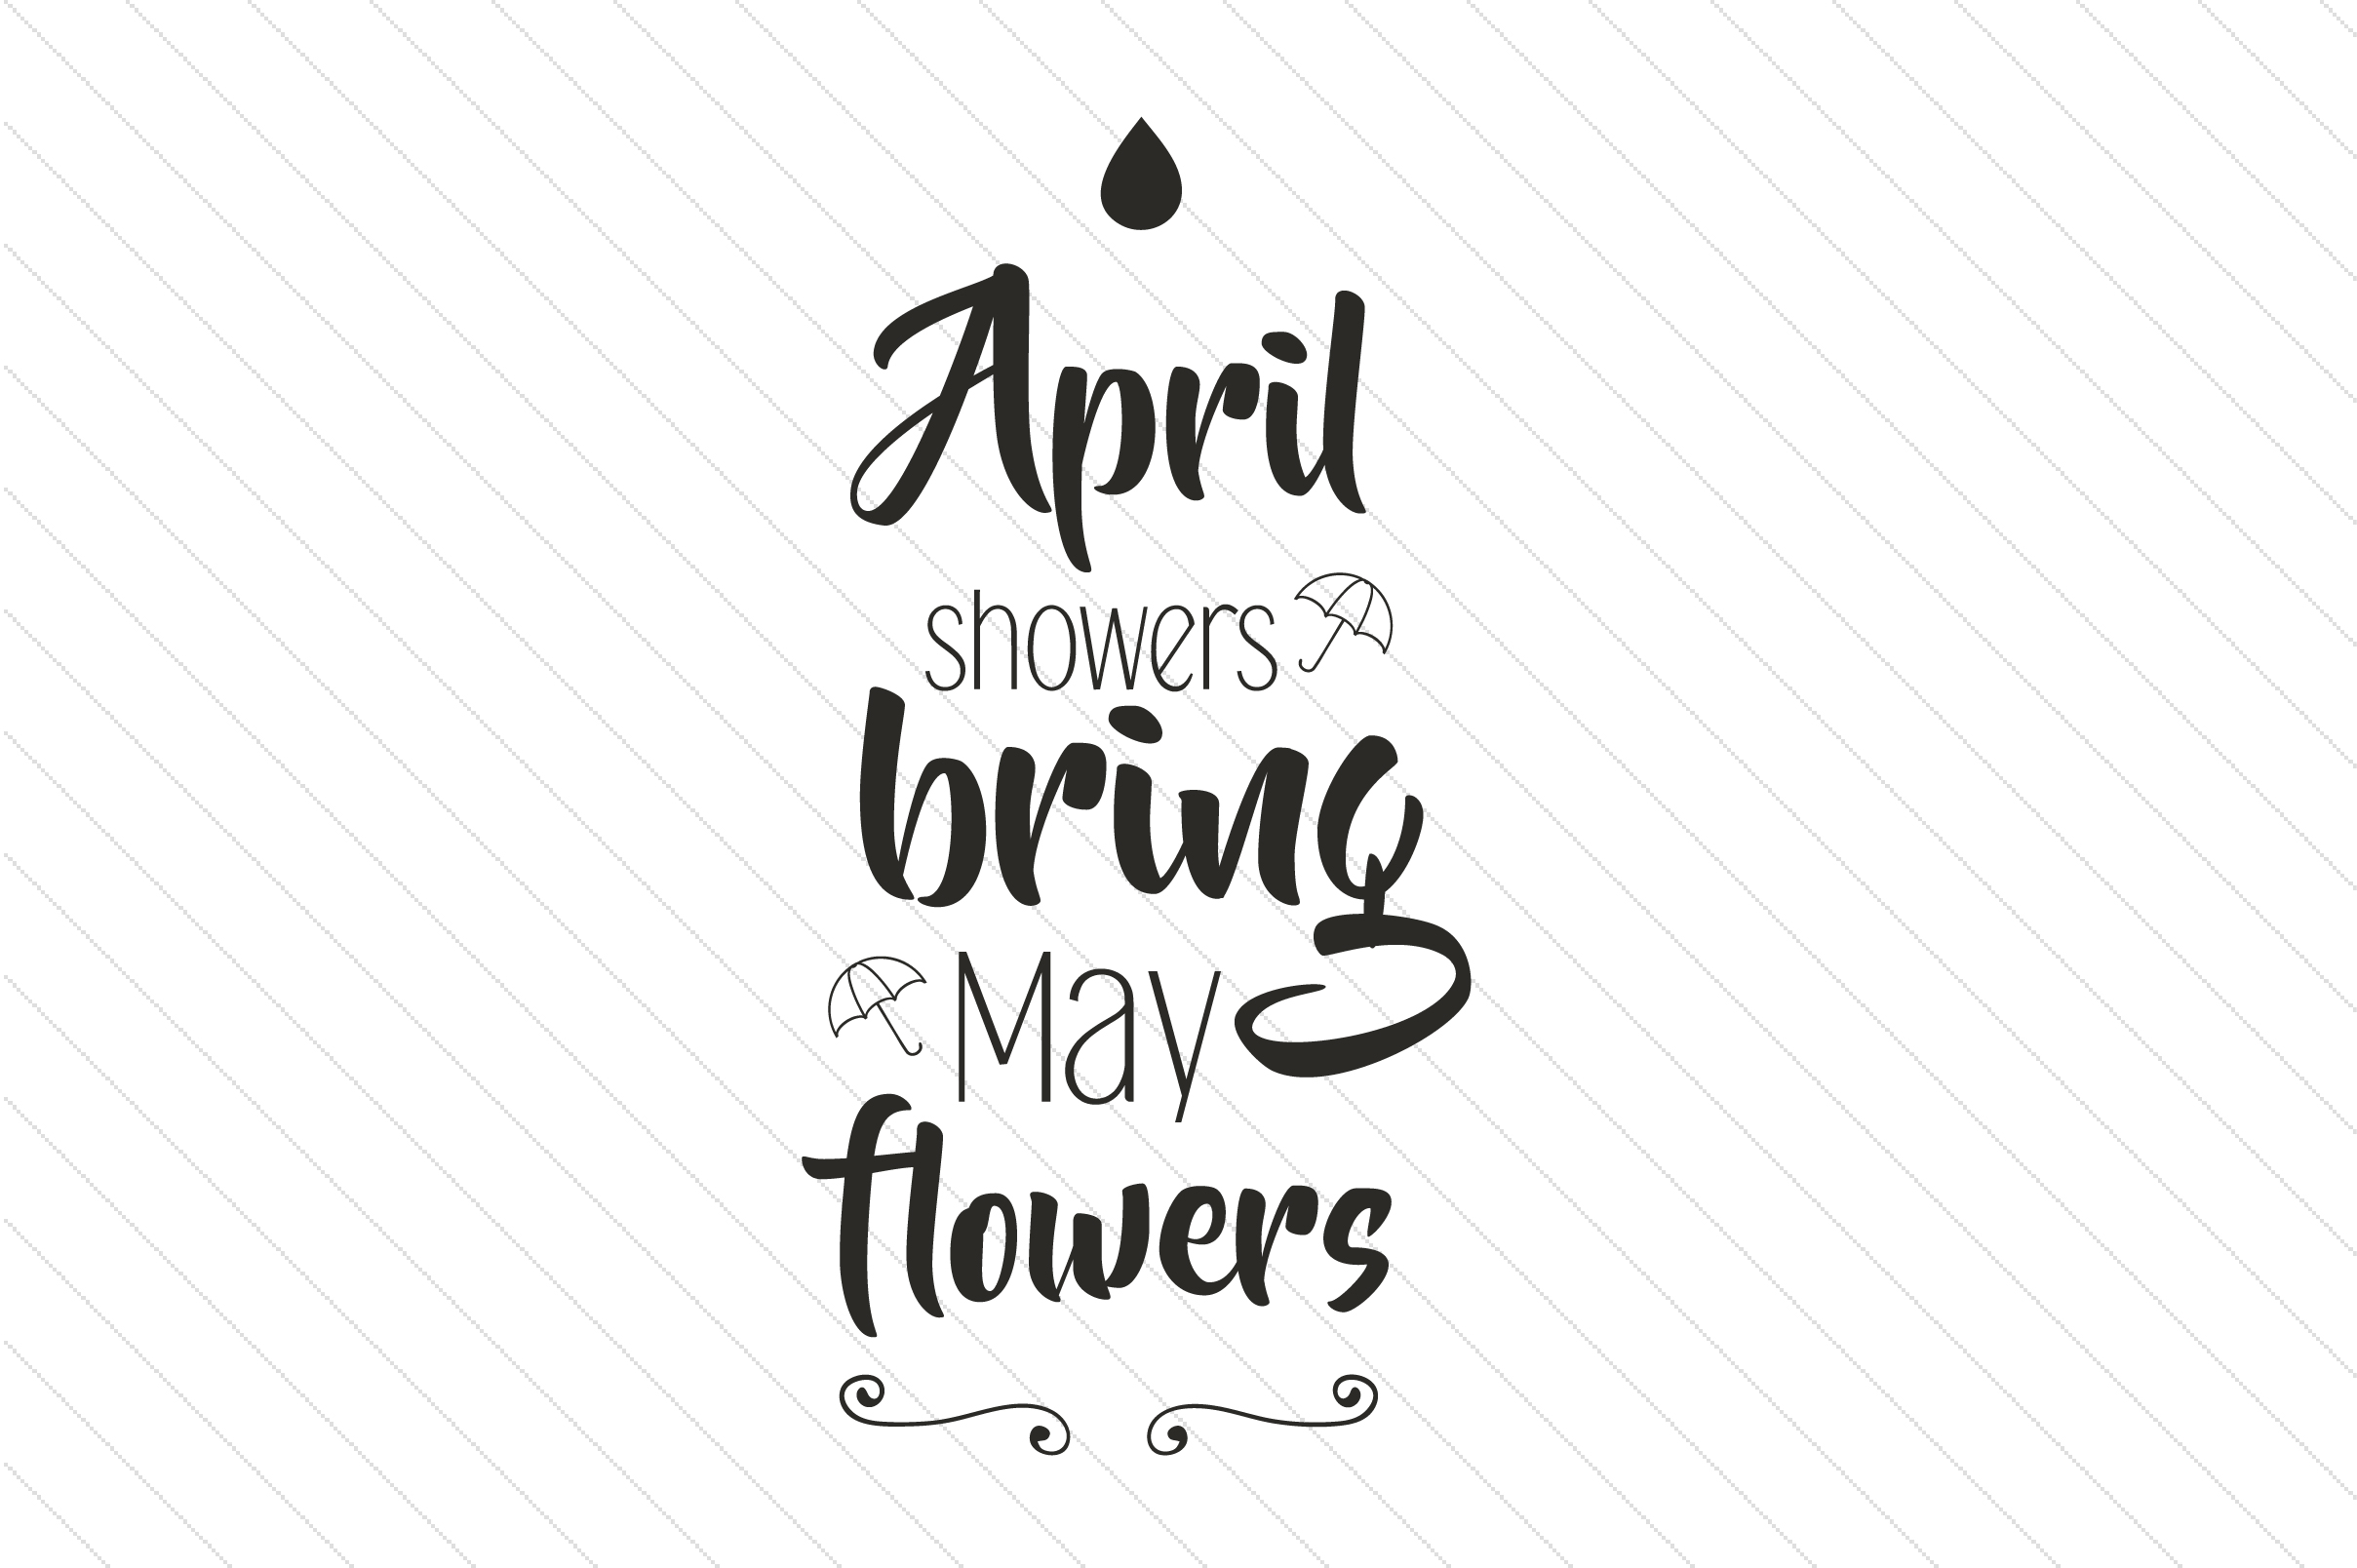 April showers bring May flowers SVG Cut file by Creative